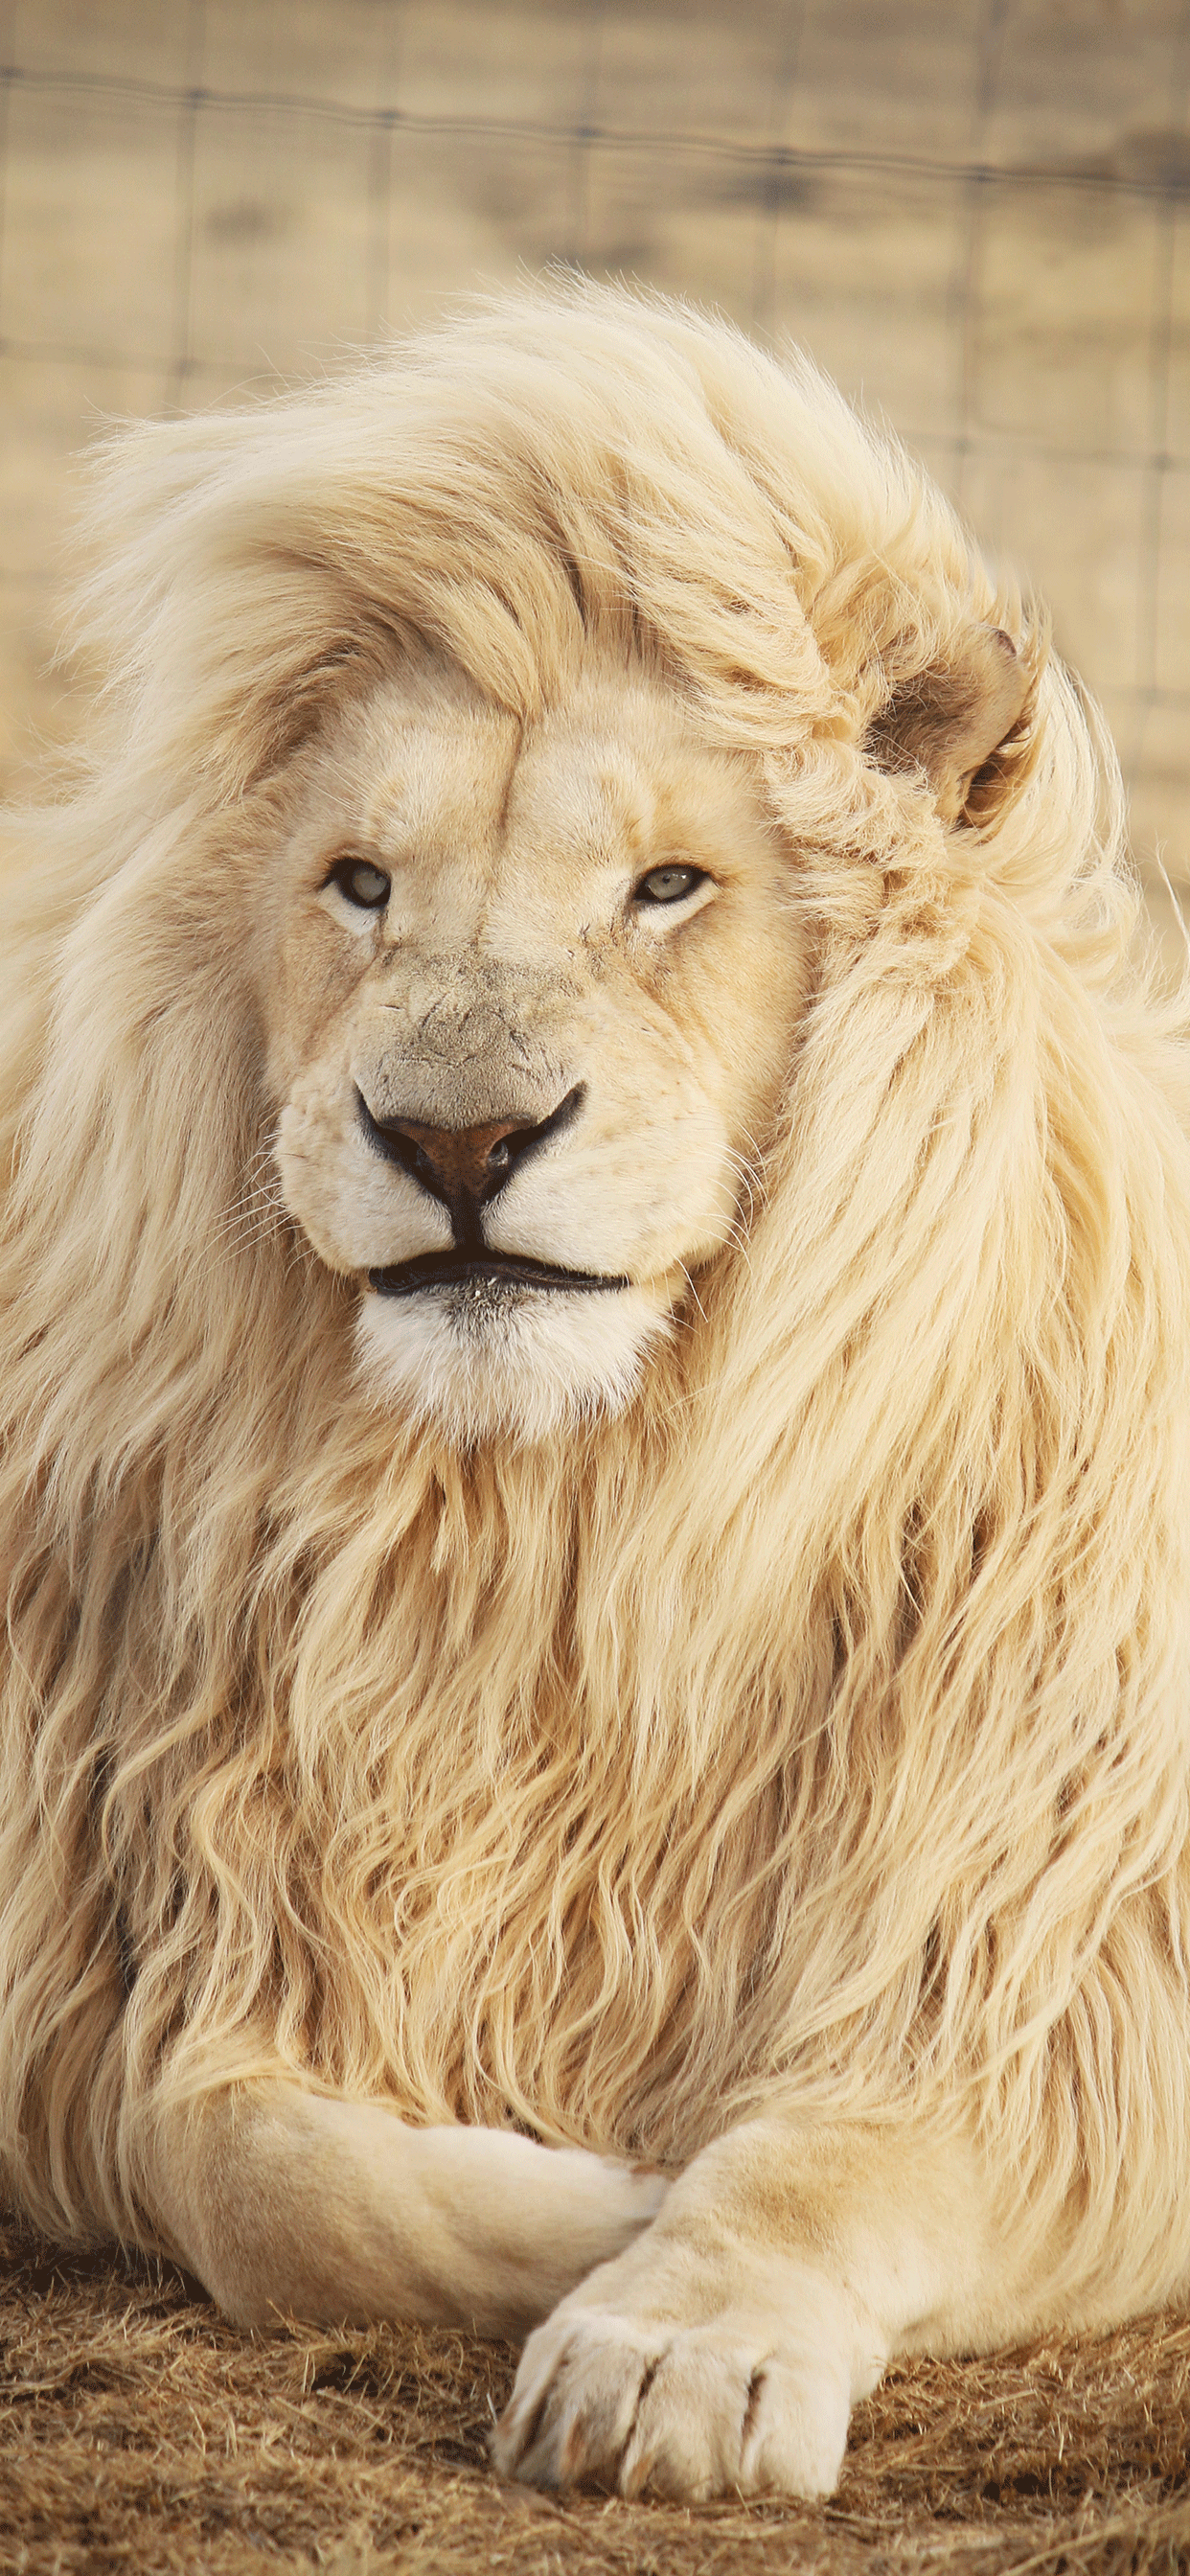 iPhone wallpaper lion south africa Lion